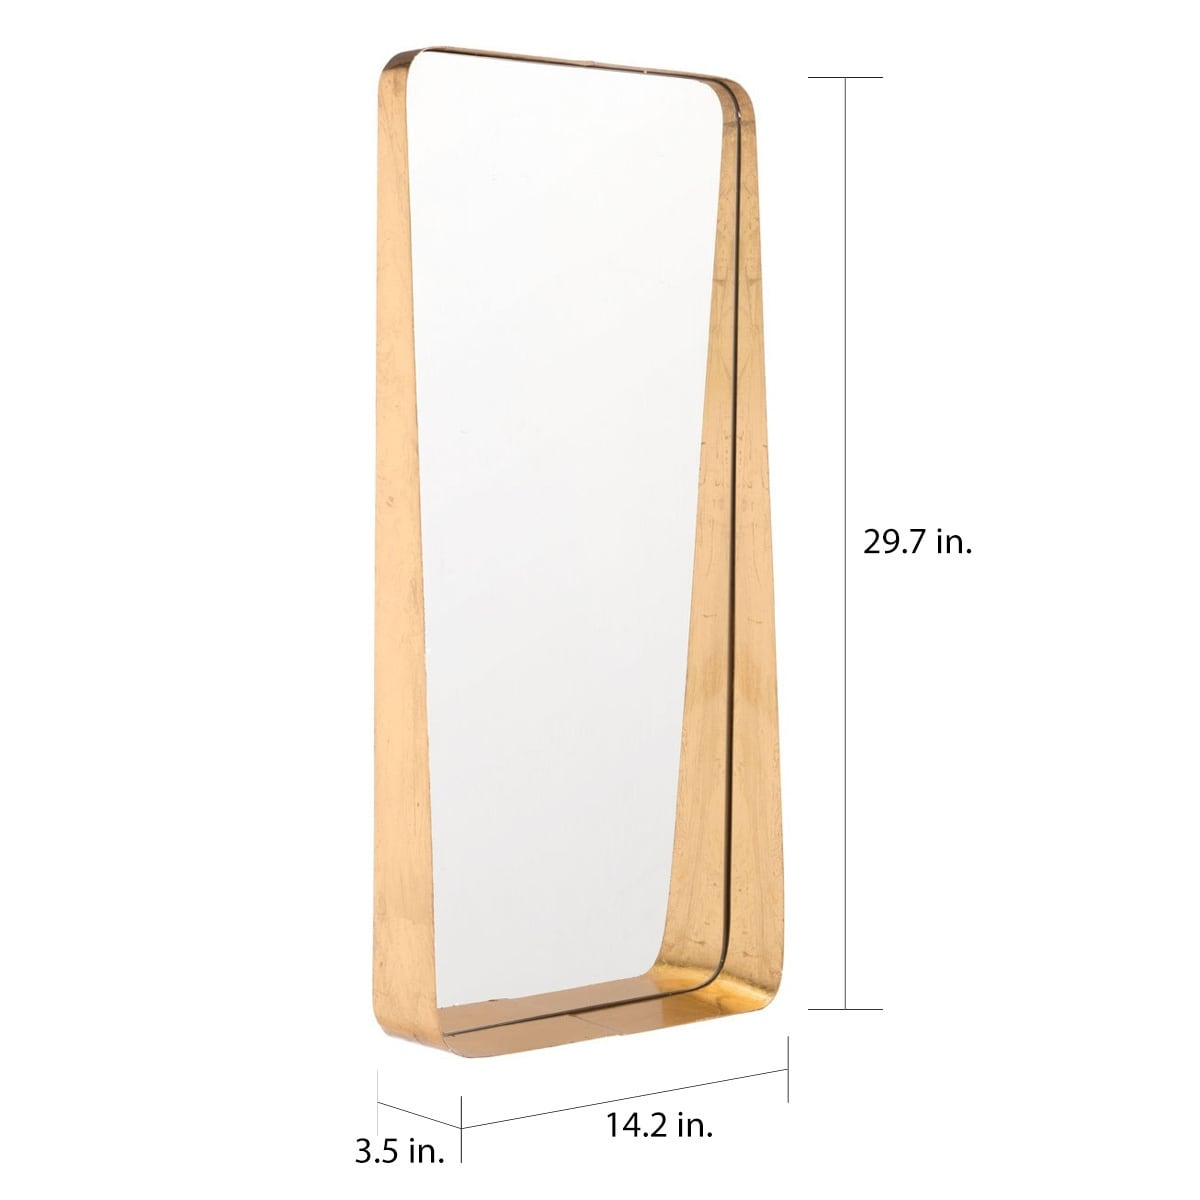 Tall Gold Mirror Gold Overstock 18684765